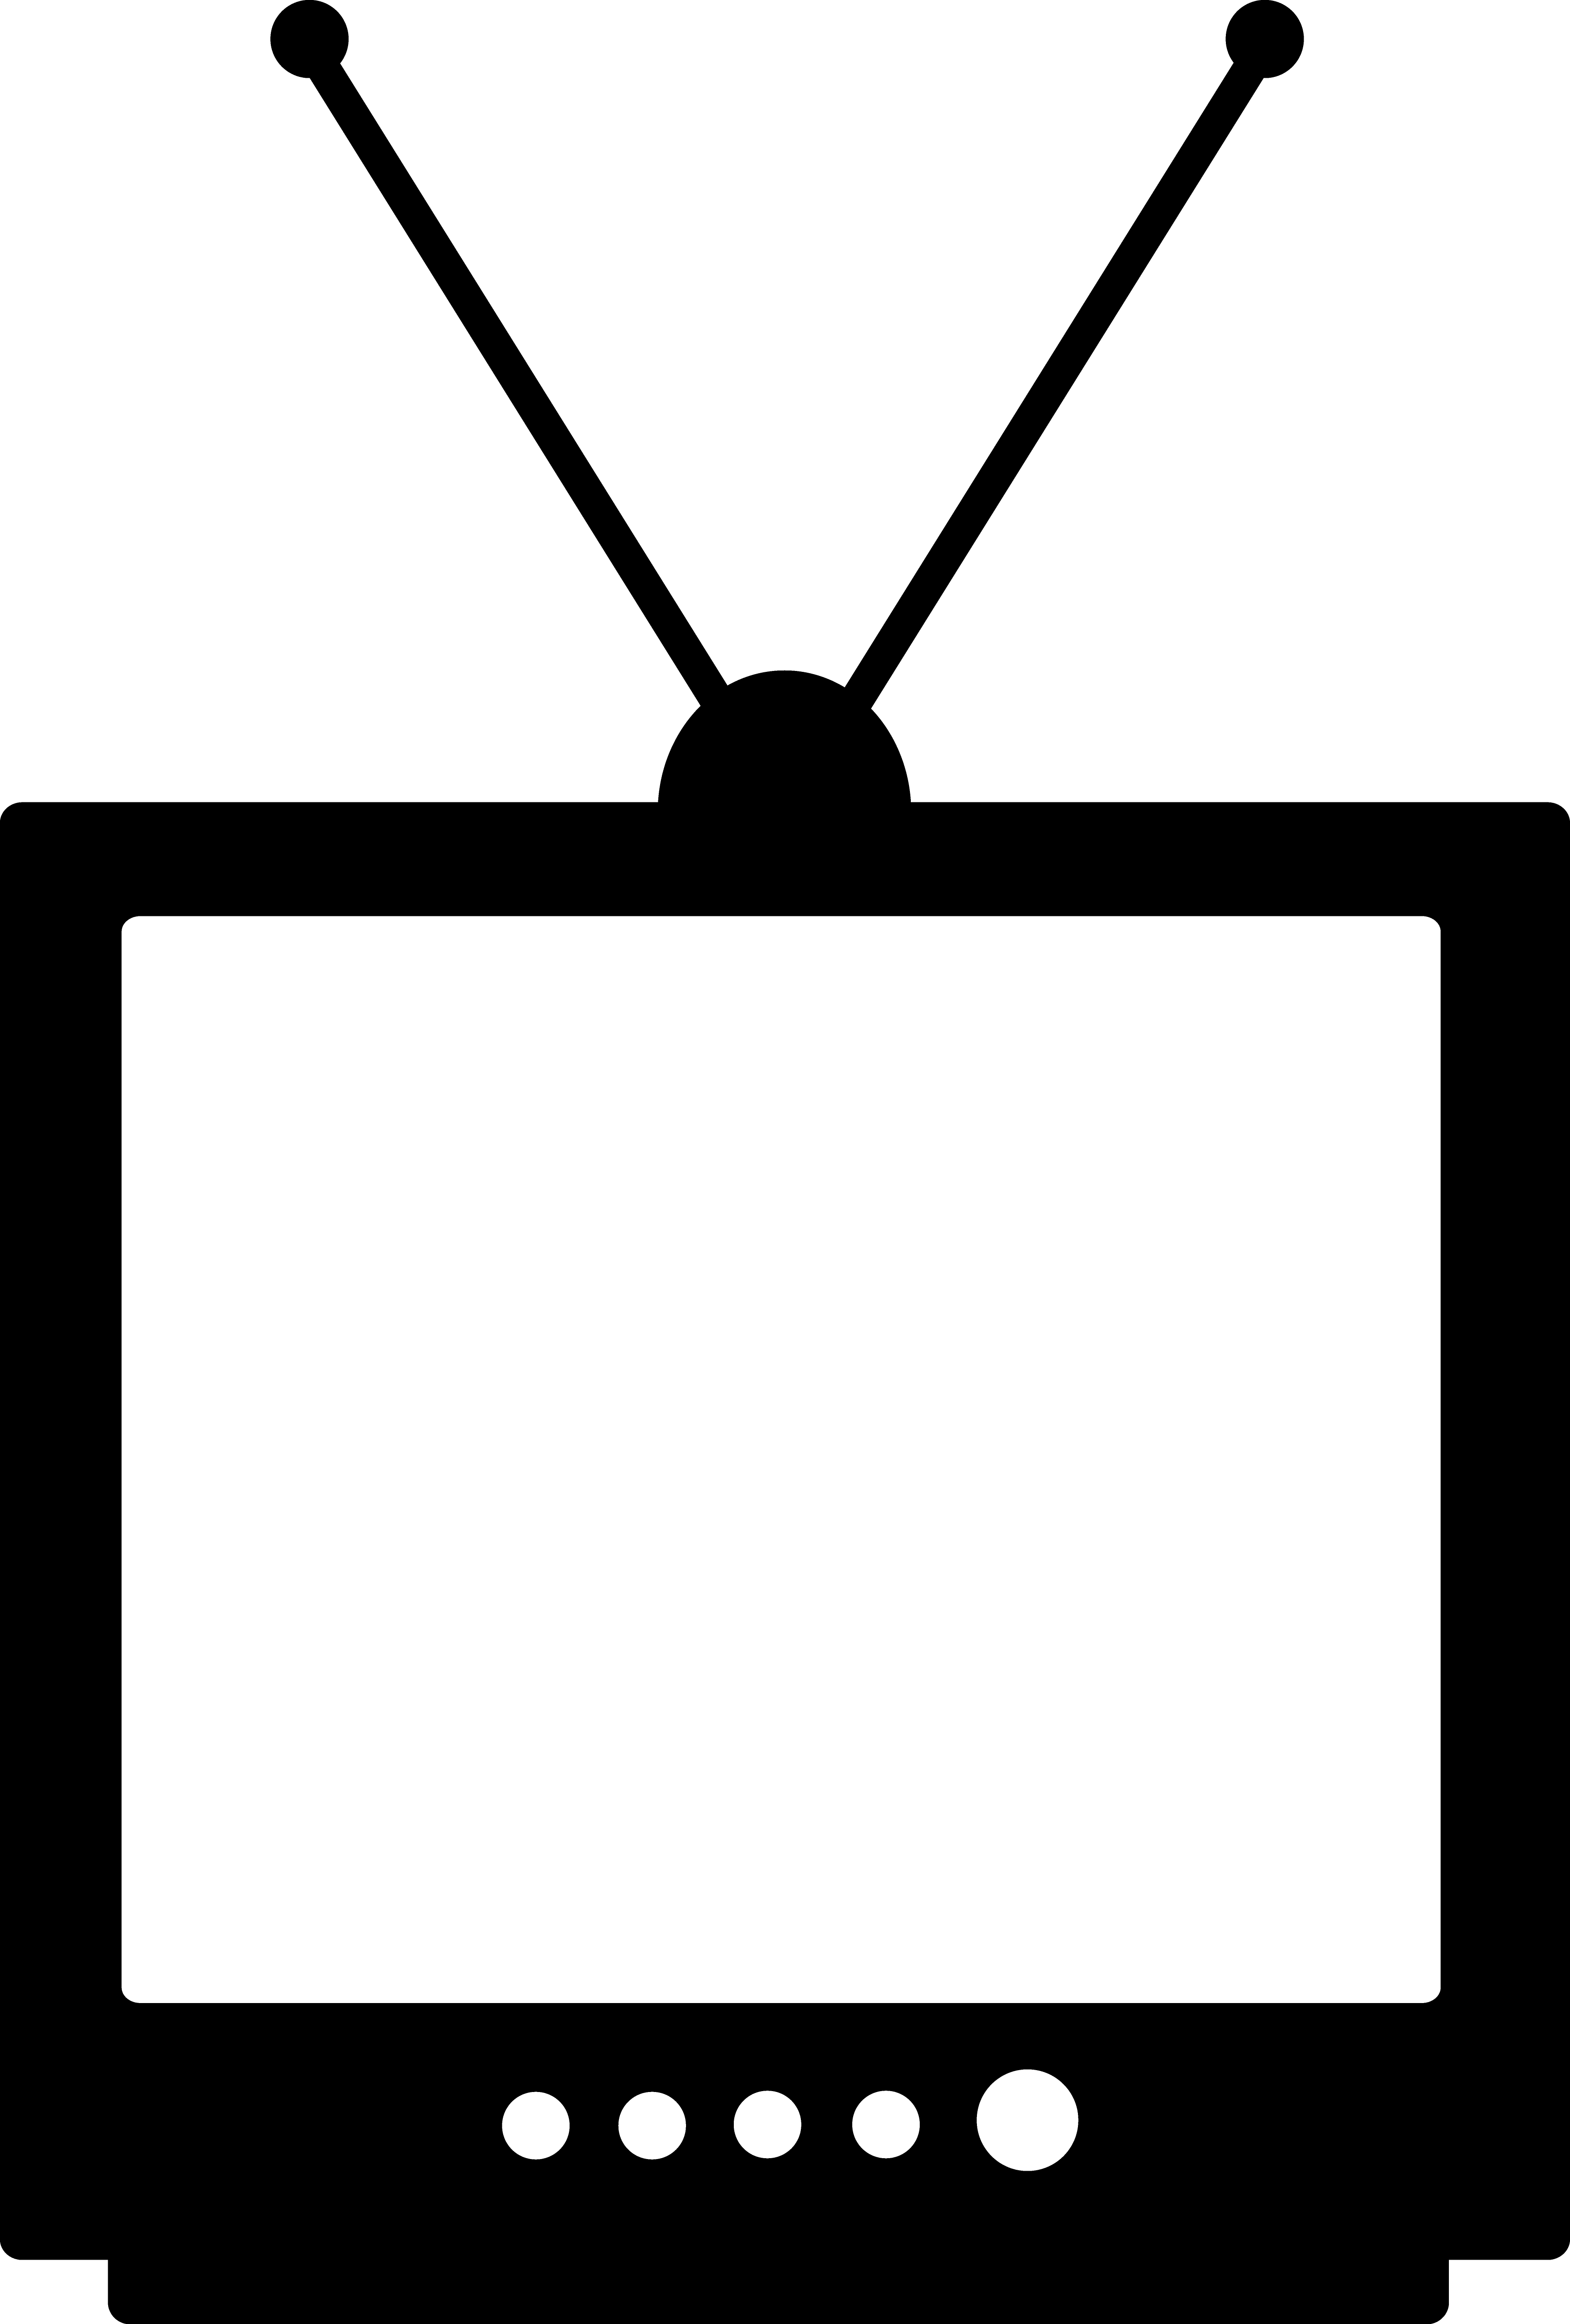 Square clipart telly, Square telly Transparent FREE for.